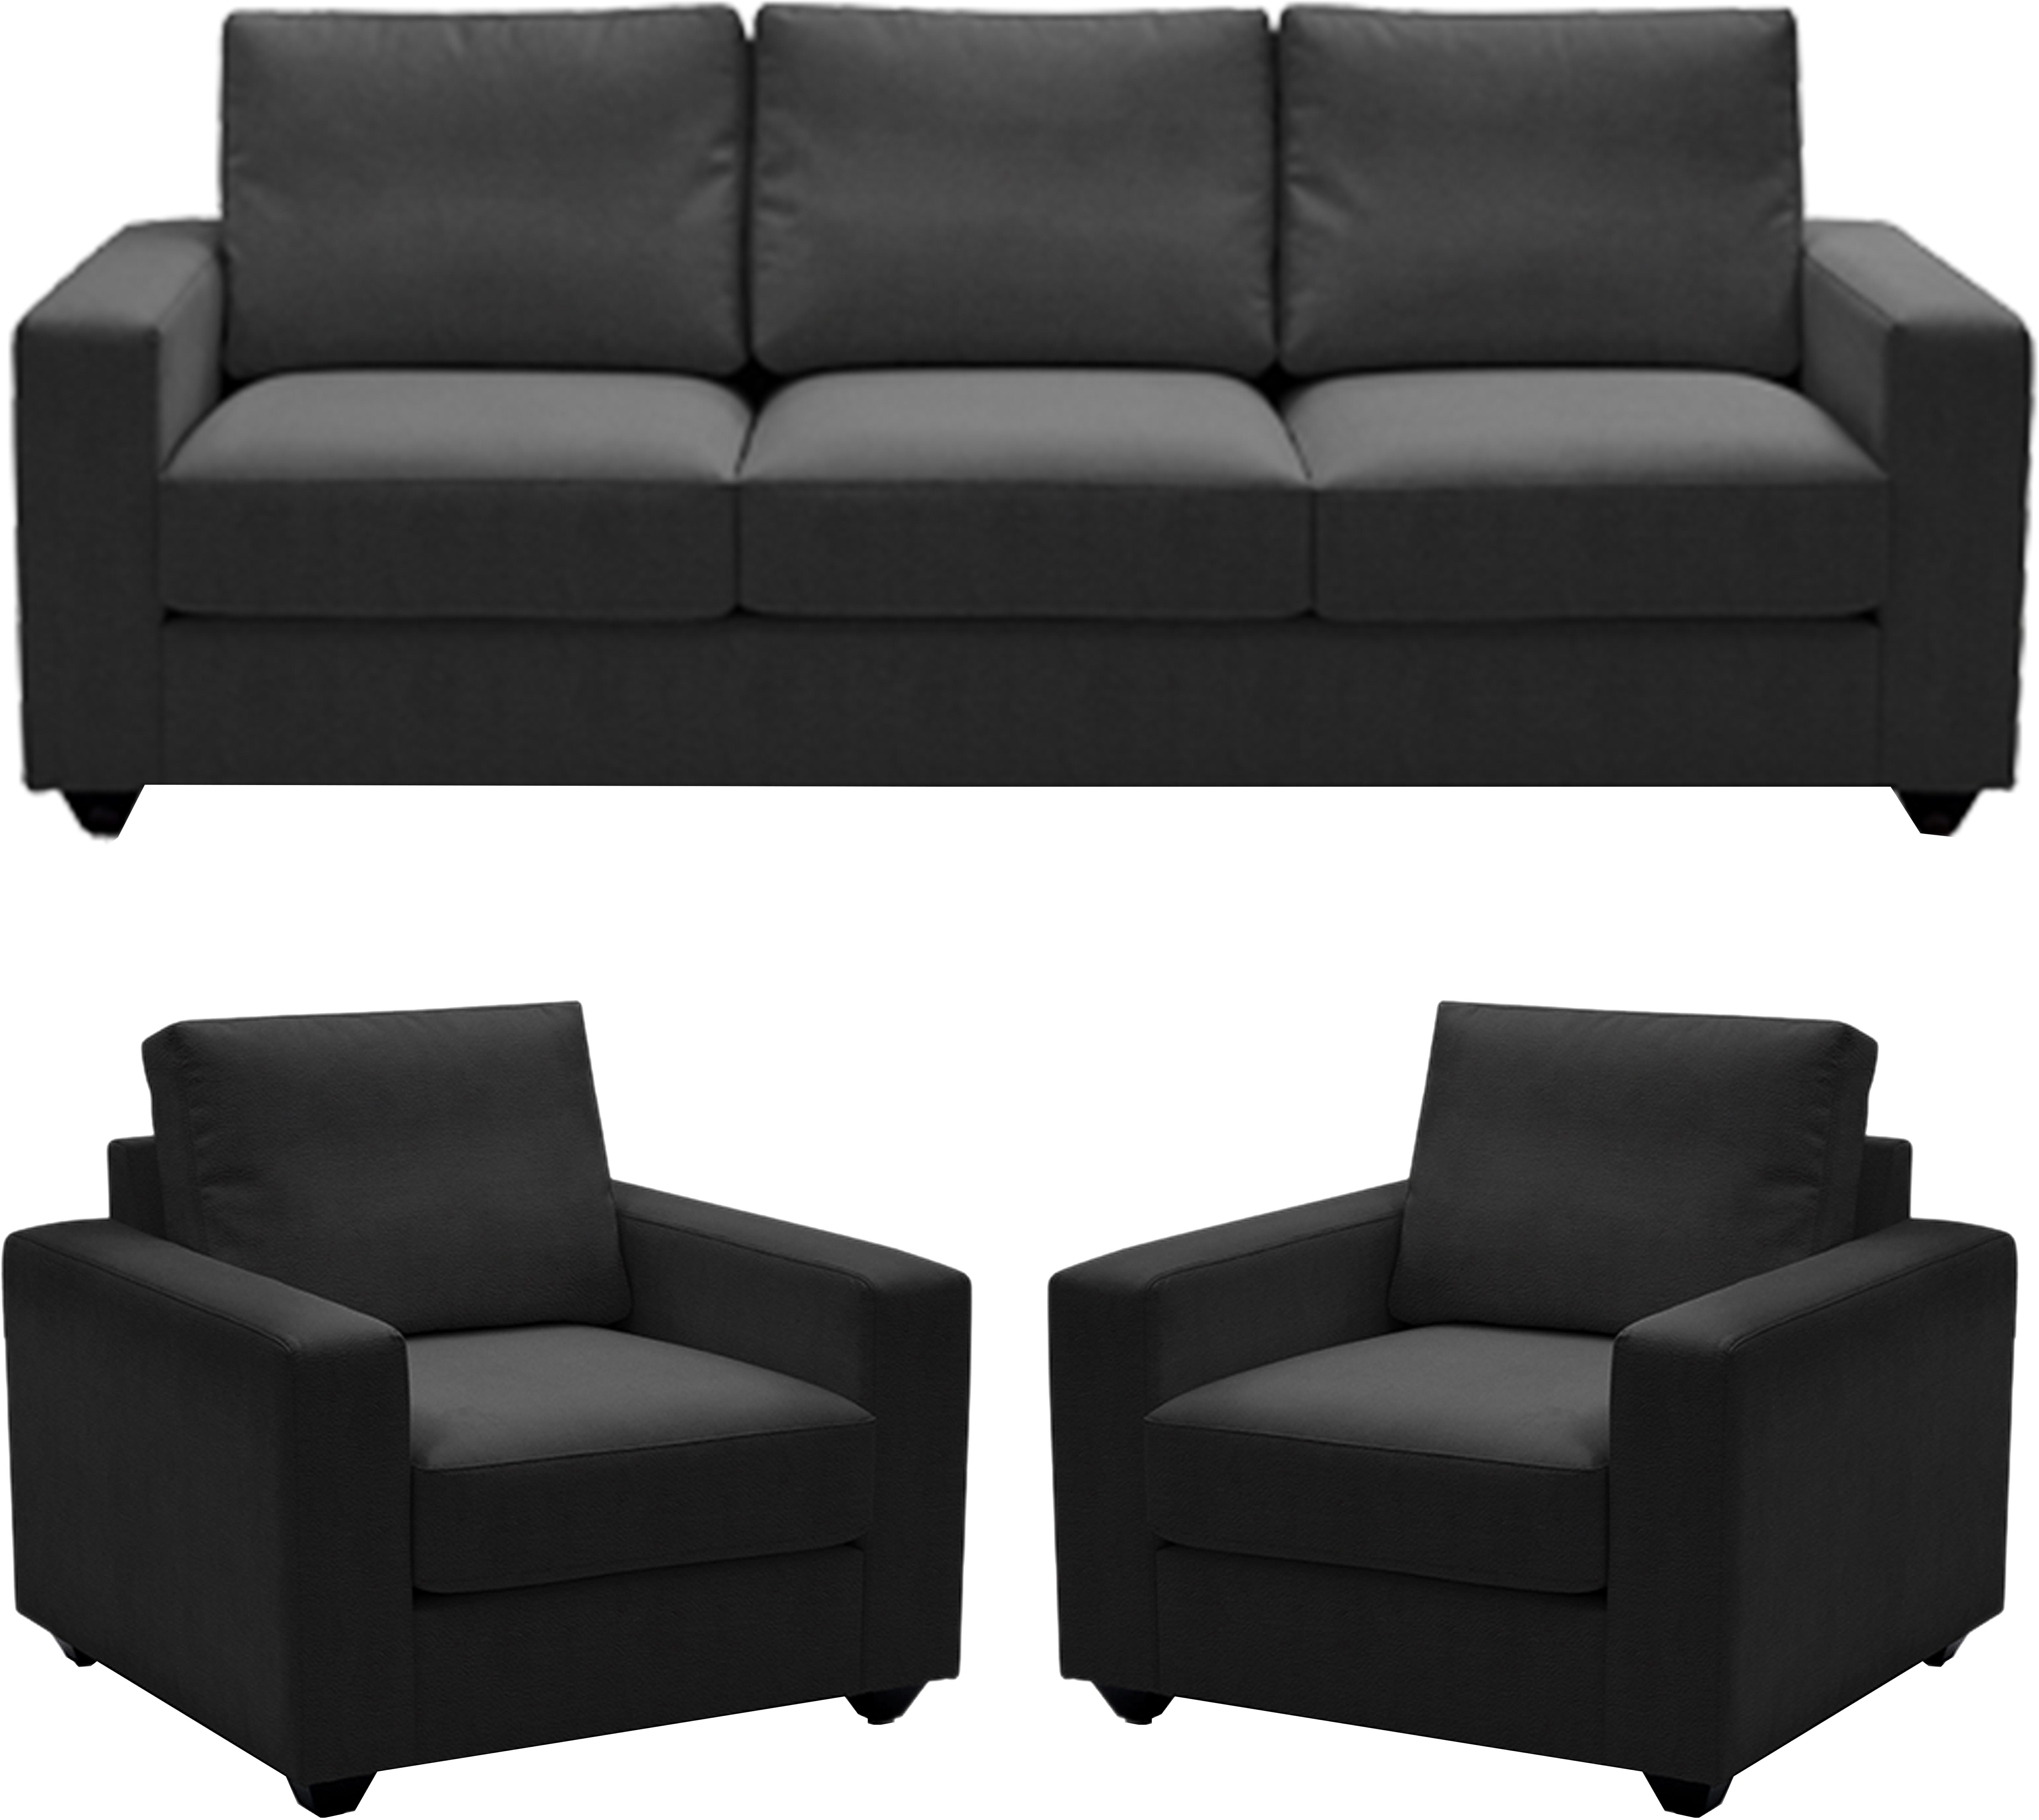 View ELEGANT FURNITURE Leatherette 3 + 1 + 1 DARK GREY Sofa Set(Configuration - STRAIGHT) Furniture (ELEGANT FURNITURE)